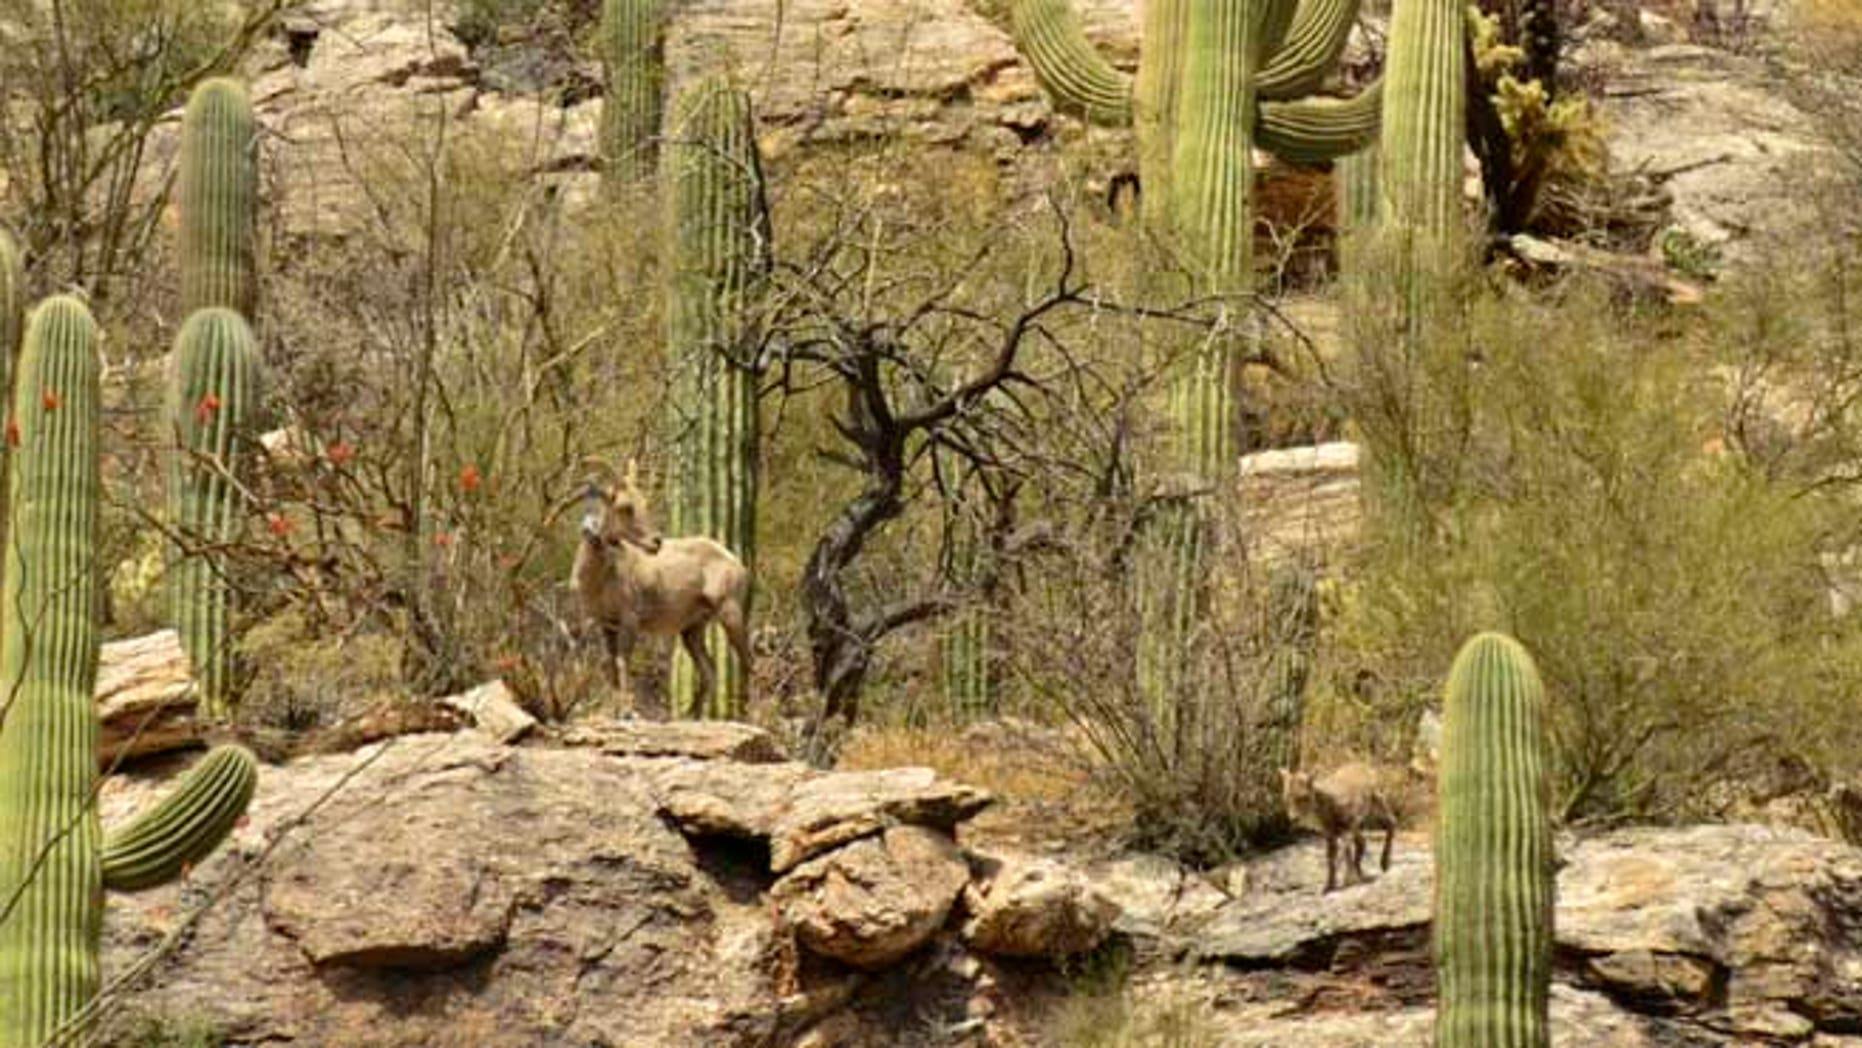 This photo, obtained by FoxNews.com, shows part of the bighorn sheep herd relocated from Yuma to the Catalina mountains, just north of Tuscon.